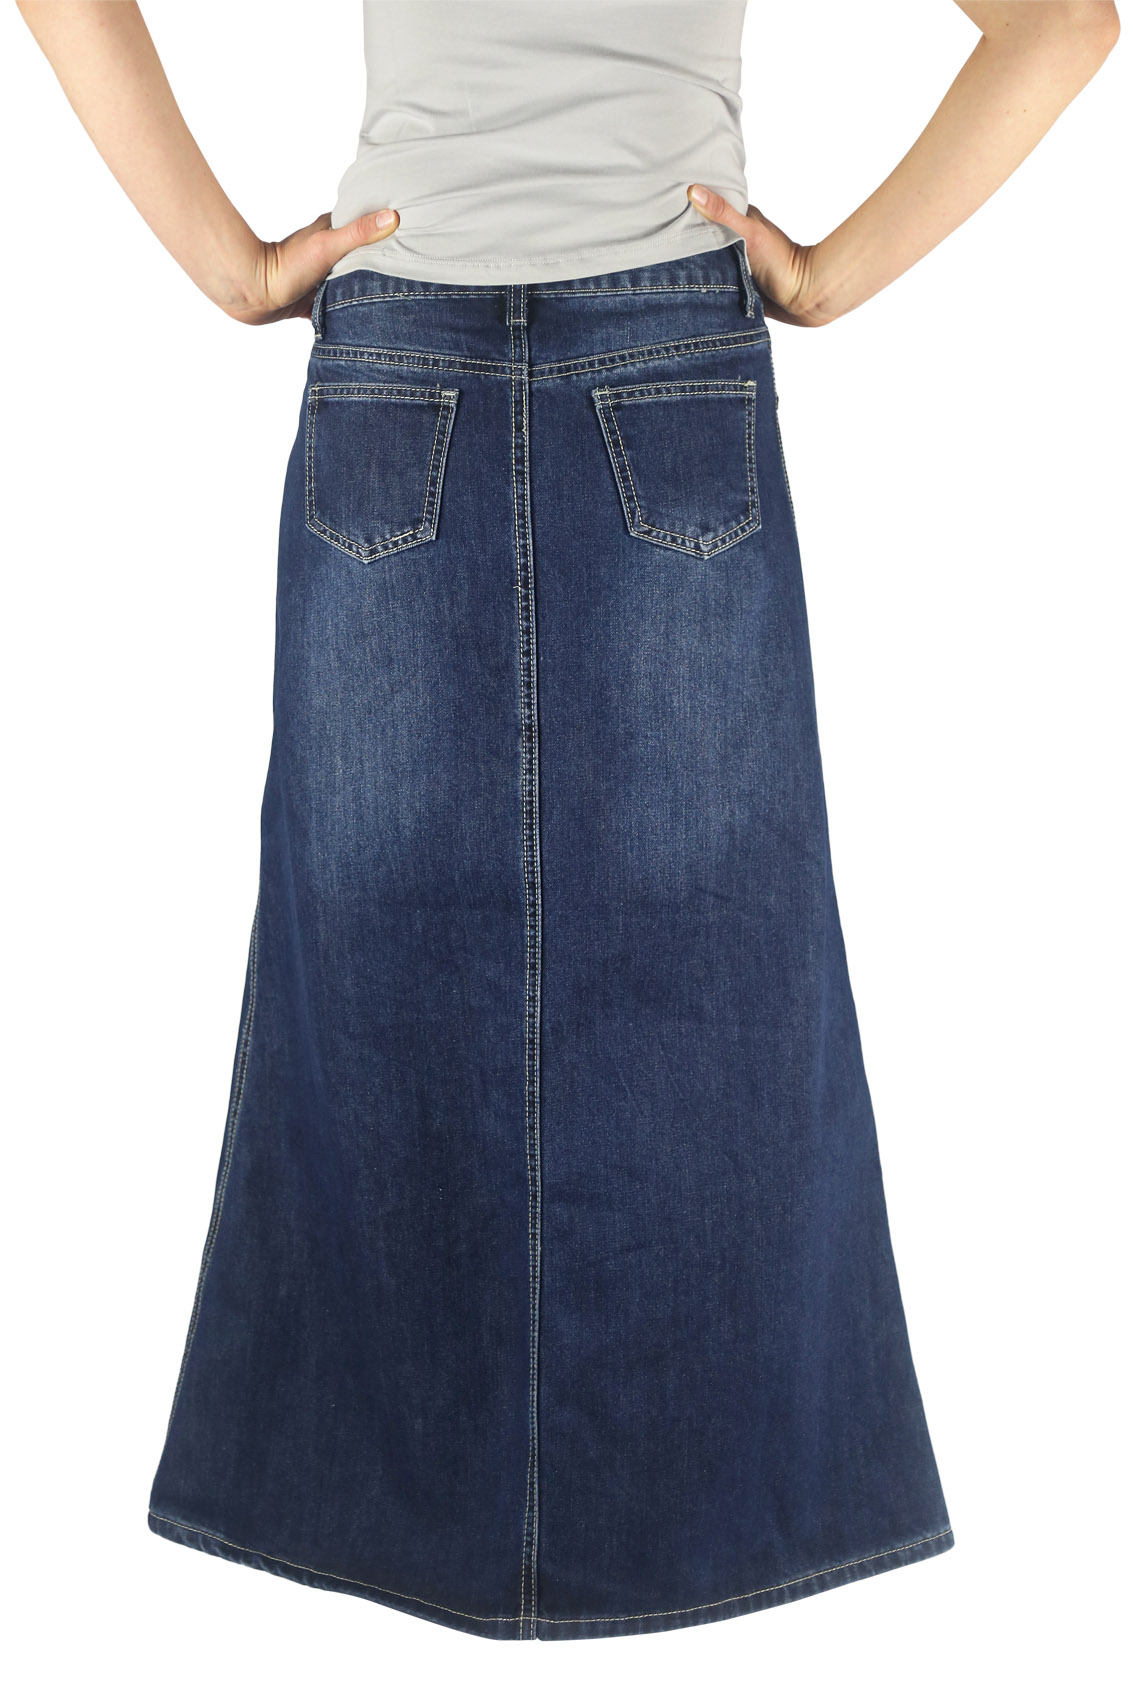 Western denim skirts long | Roupas, Saia jeans longa, Saias |Western Long Denim Skirts Modest